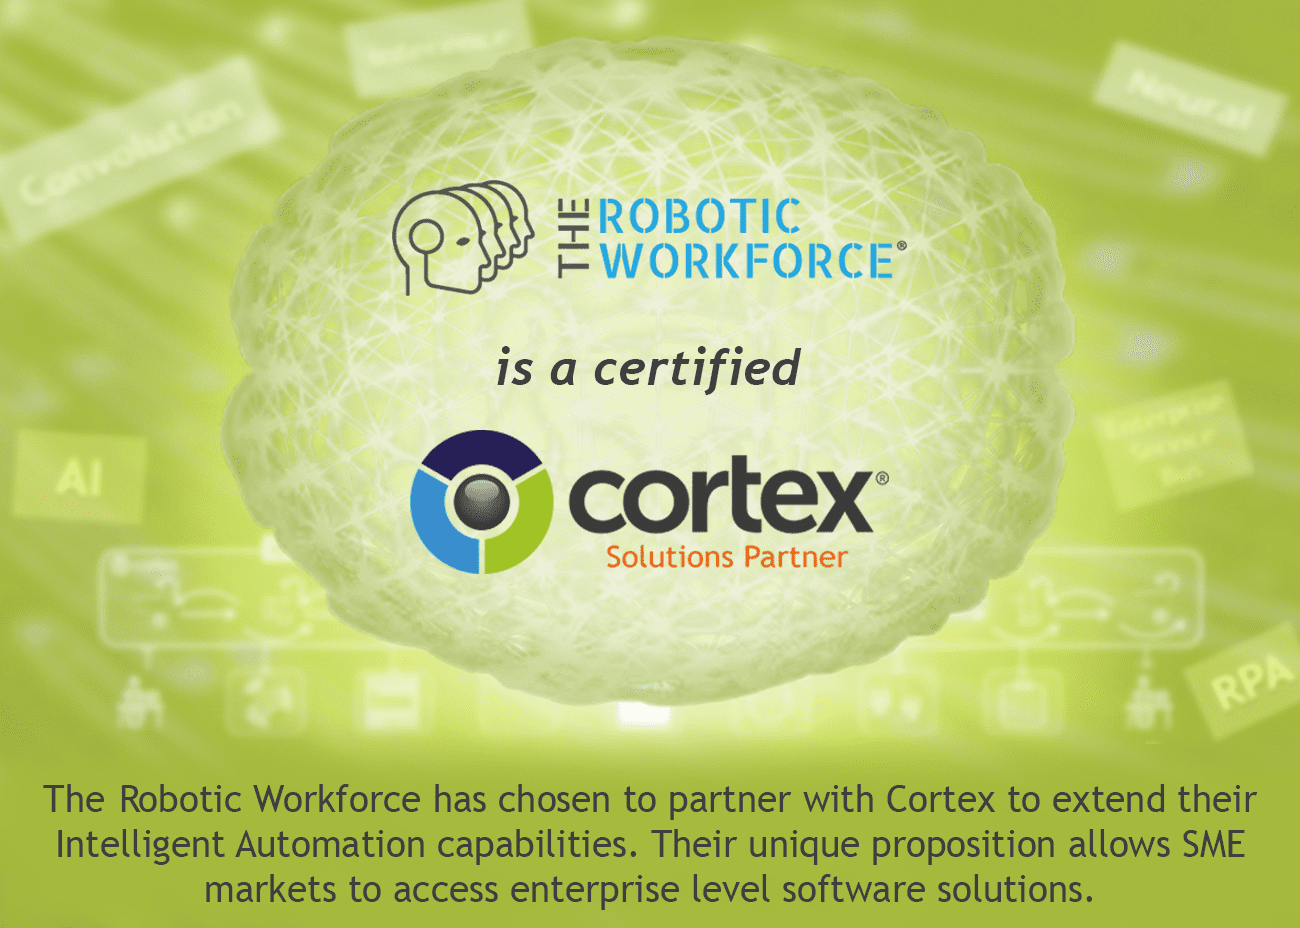 The Robotic Workforce partners with Cortex